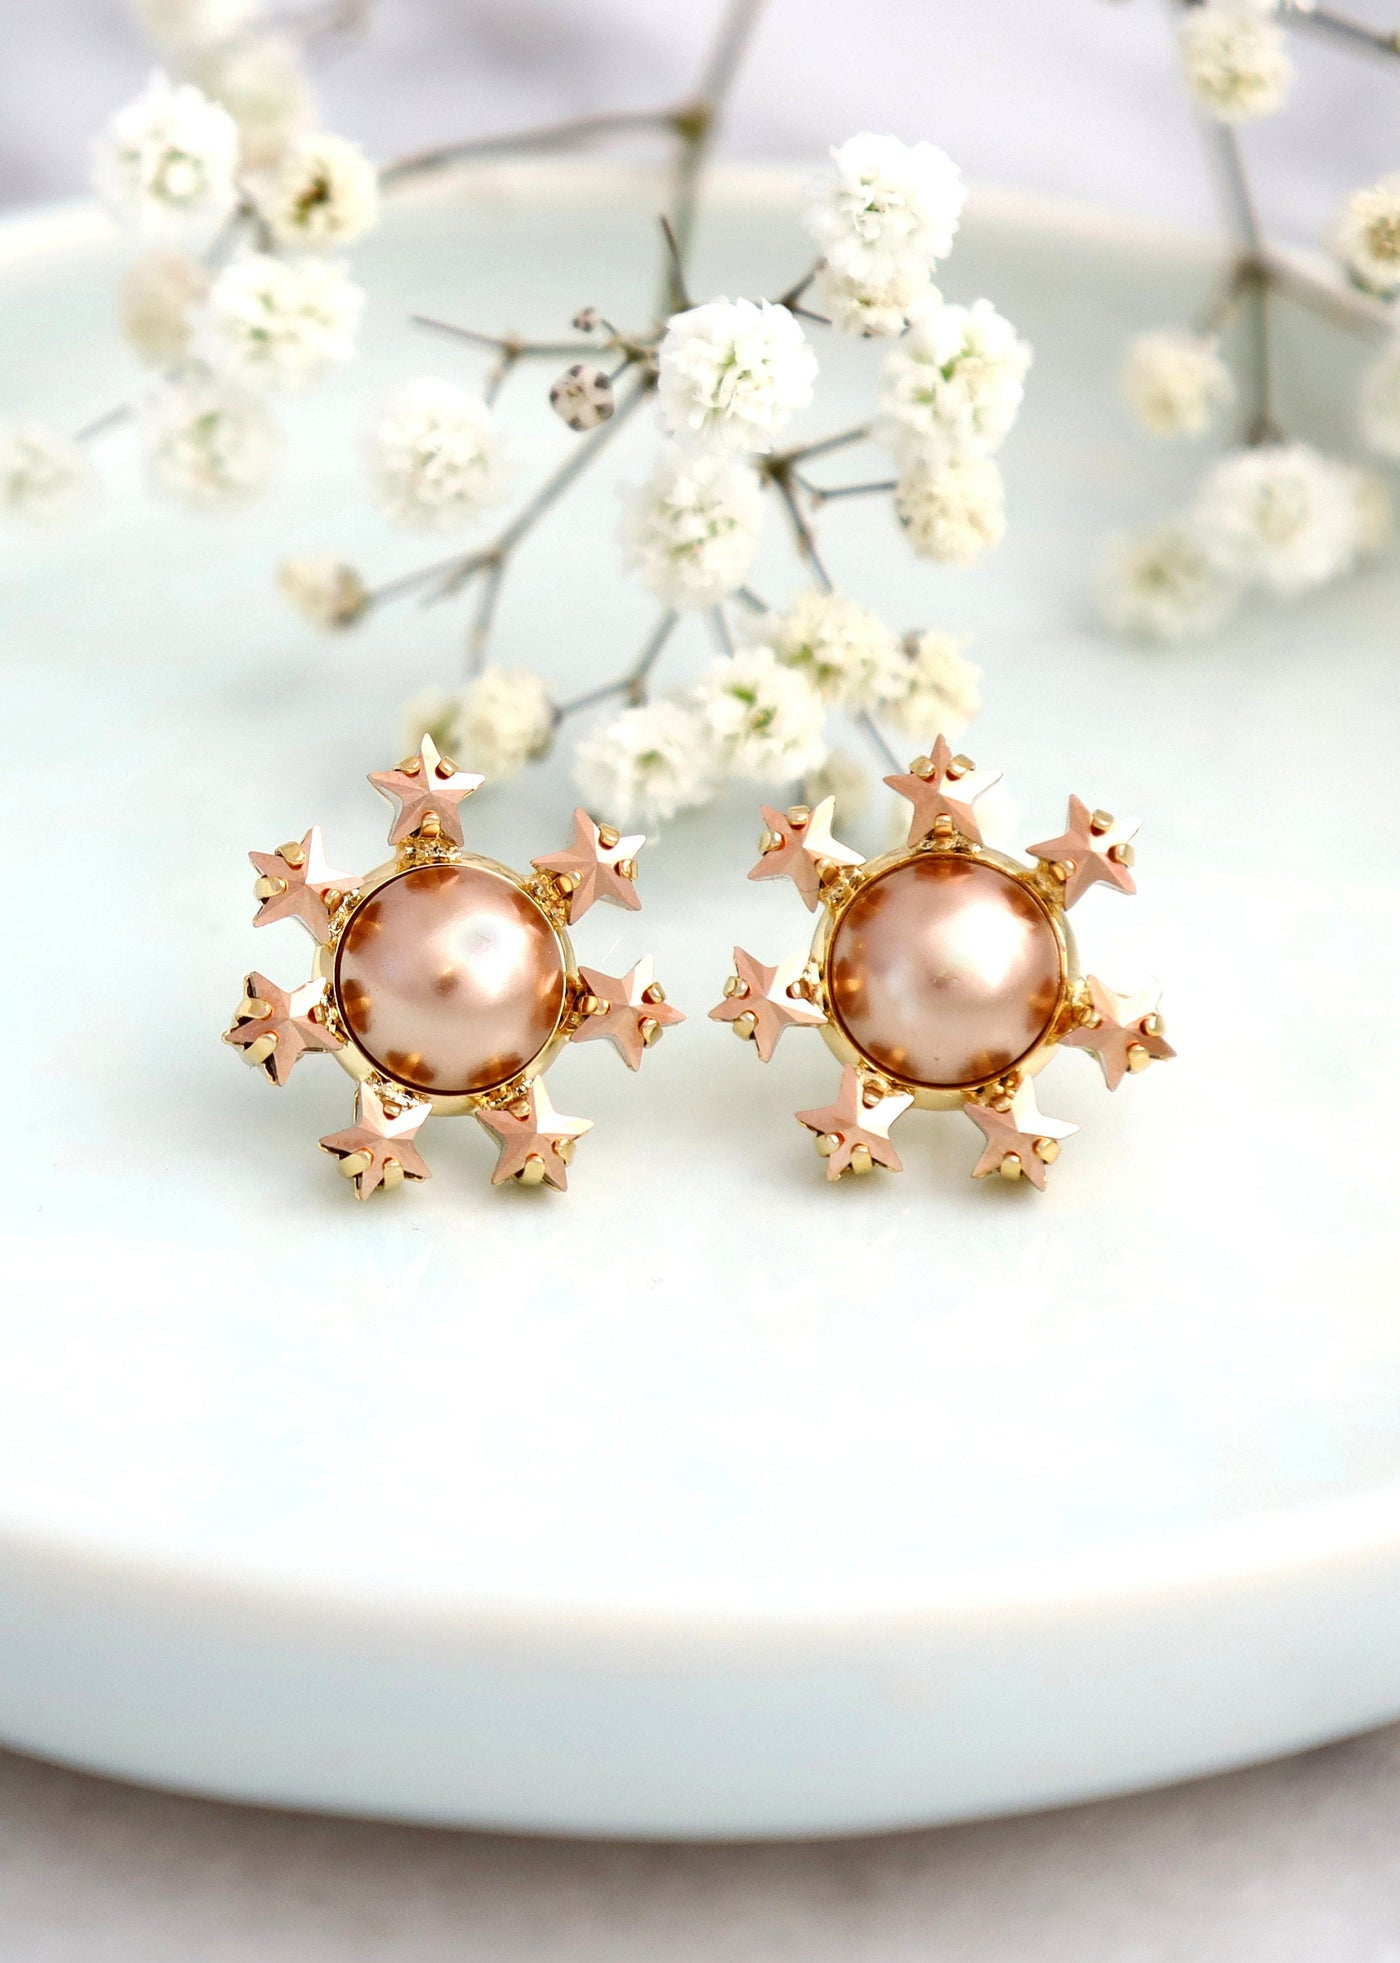 Star Earrings, Rose Cream Pearl Earrings, Pearls Stud Crystal Earrings, Stars And Celestial Earrings, Bridesmaids Studs, Gold Star Earrings